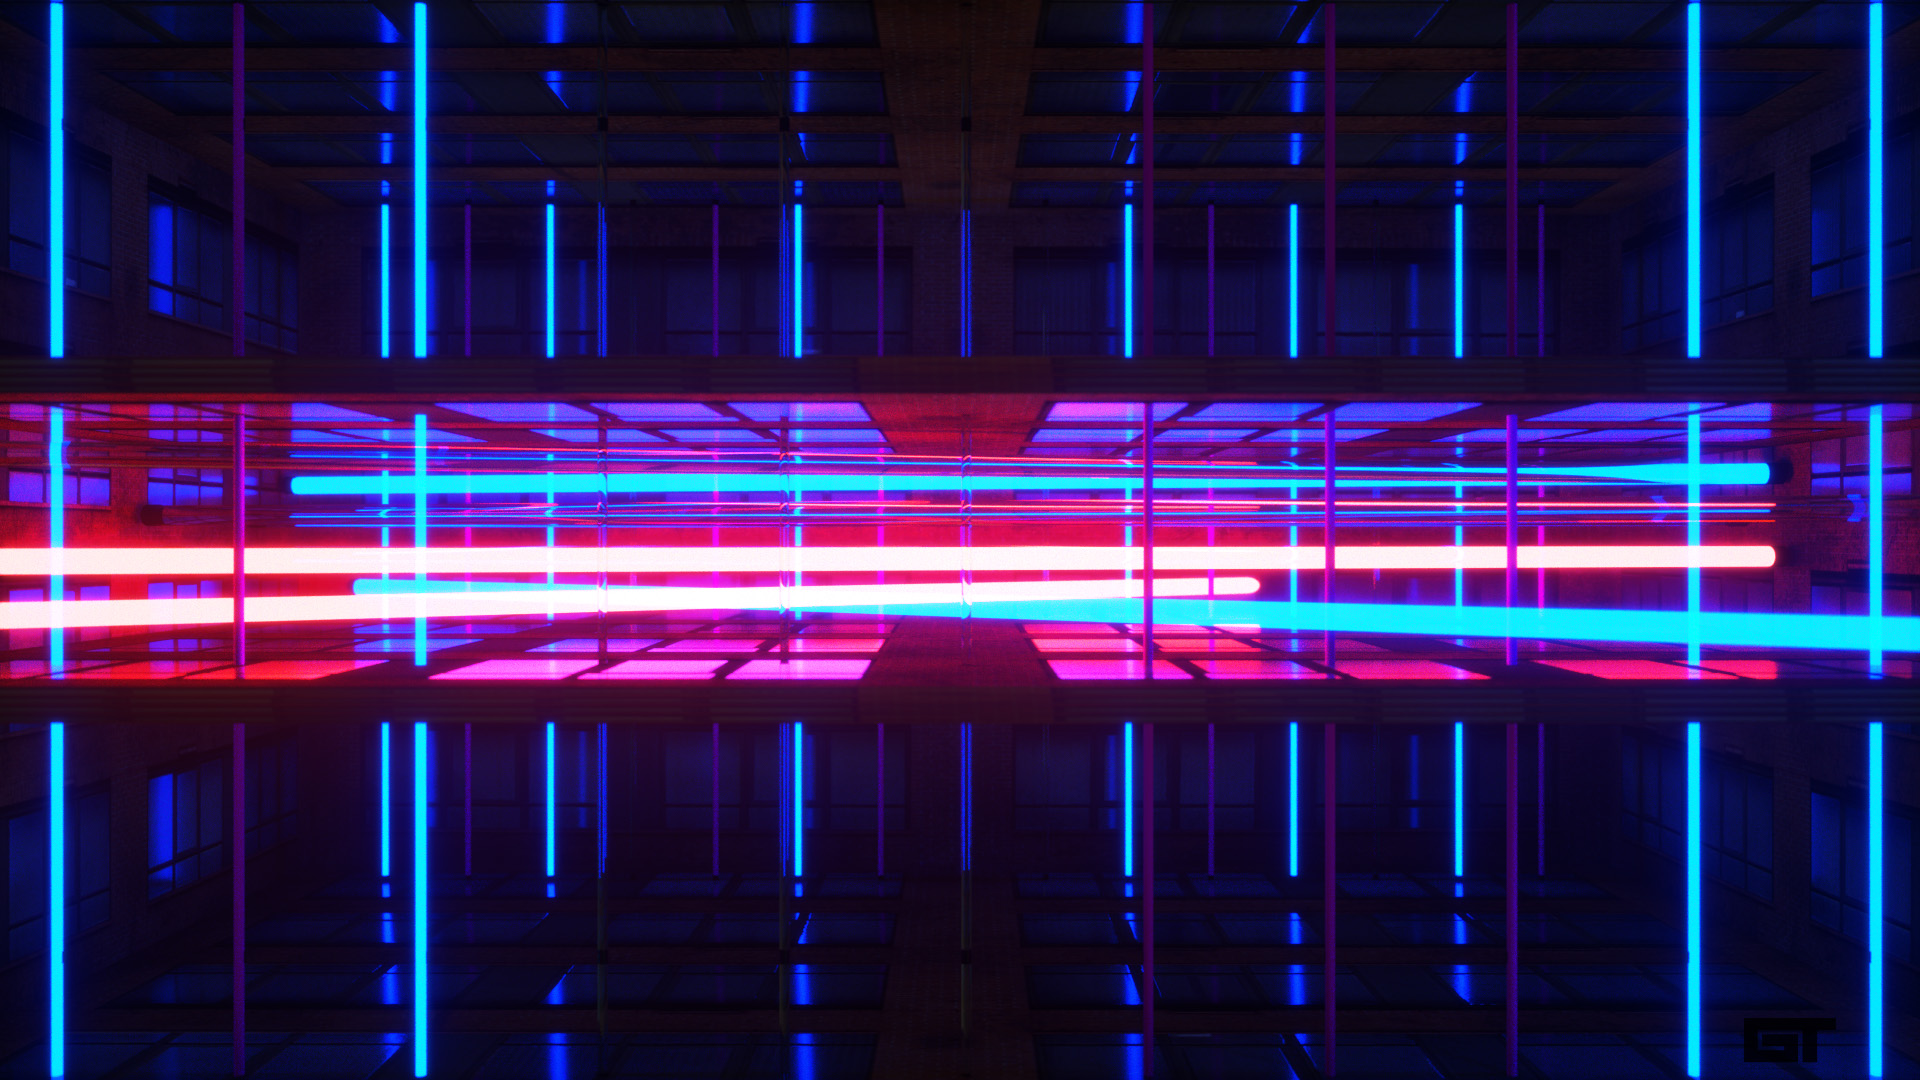 80s Grid Electro Backgrounds